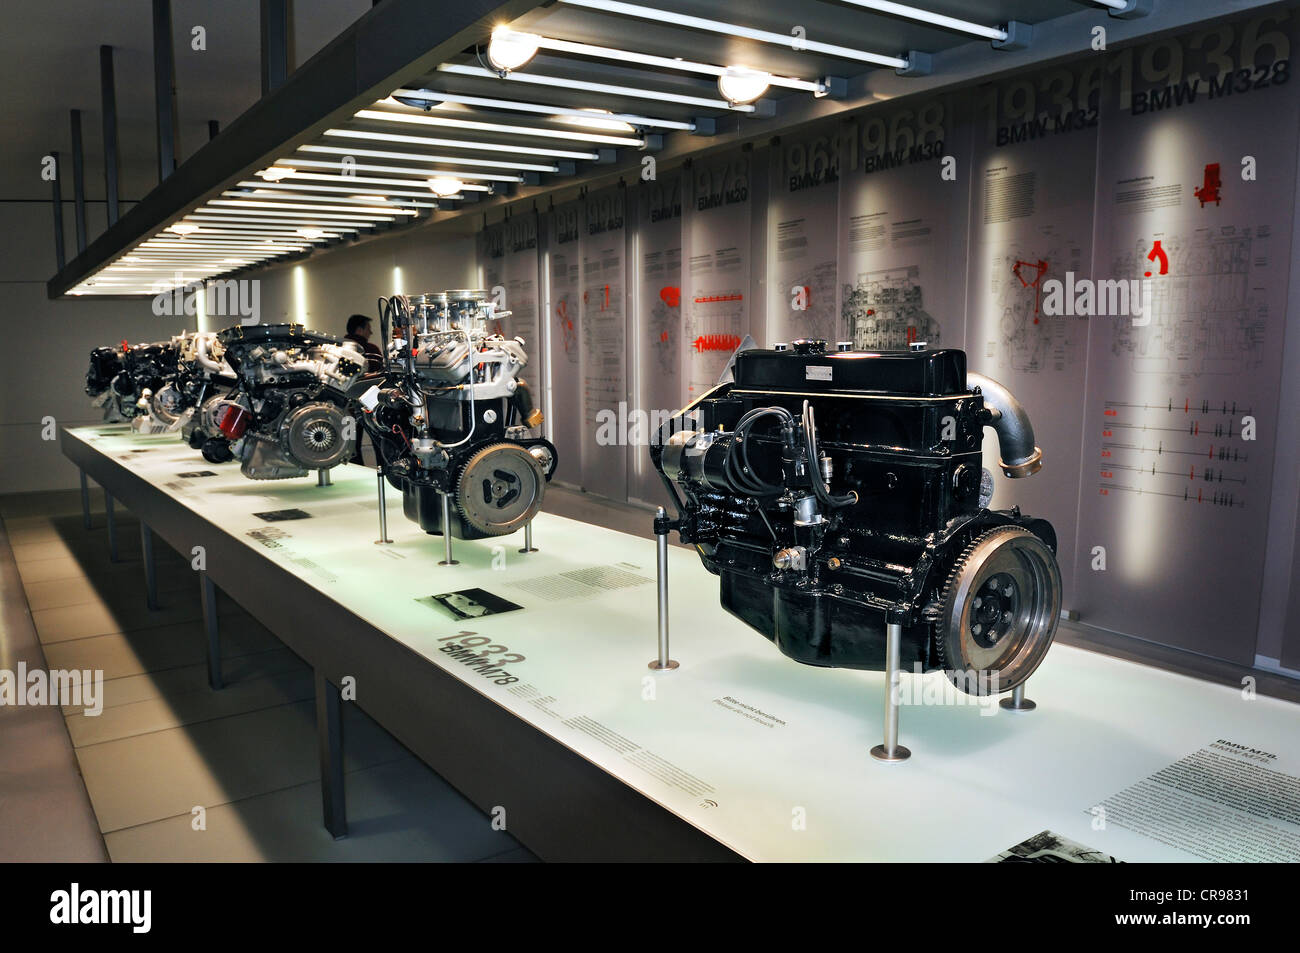 Museo Bmw.Bmw Car Engines Bmw Museum Munich Bavaria Germany Europe Stock